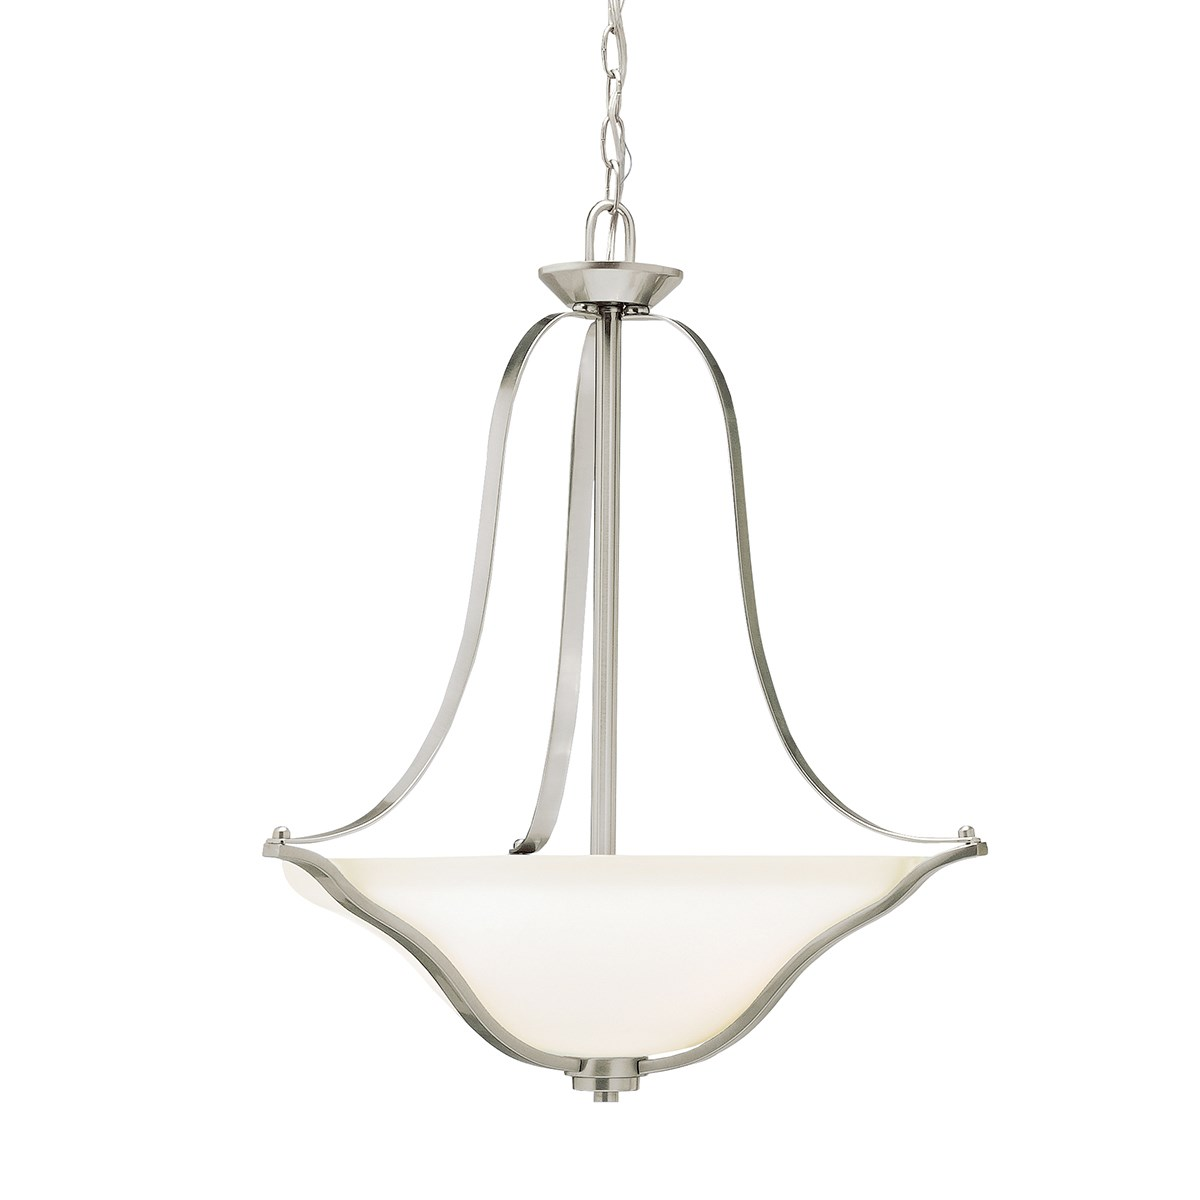 Langford™ 3 Light Inverted Pendant with LED Bulbs Brushed Nickel